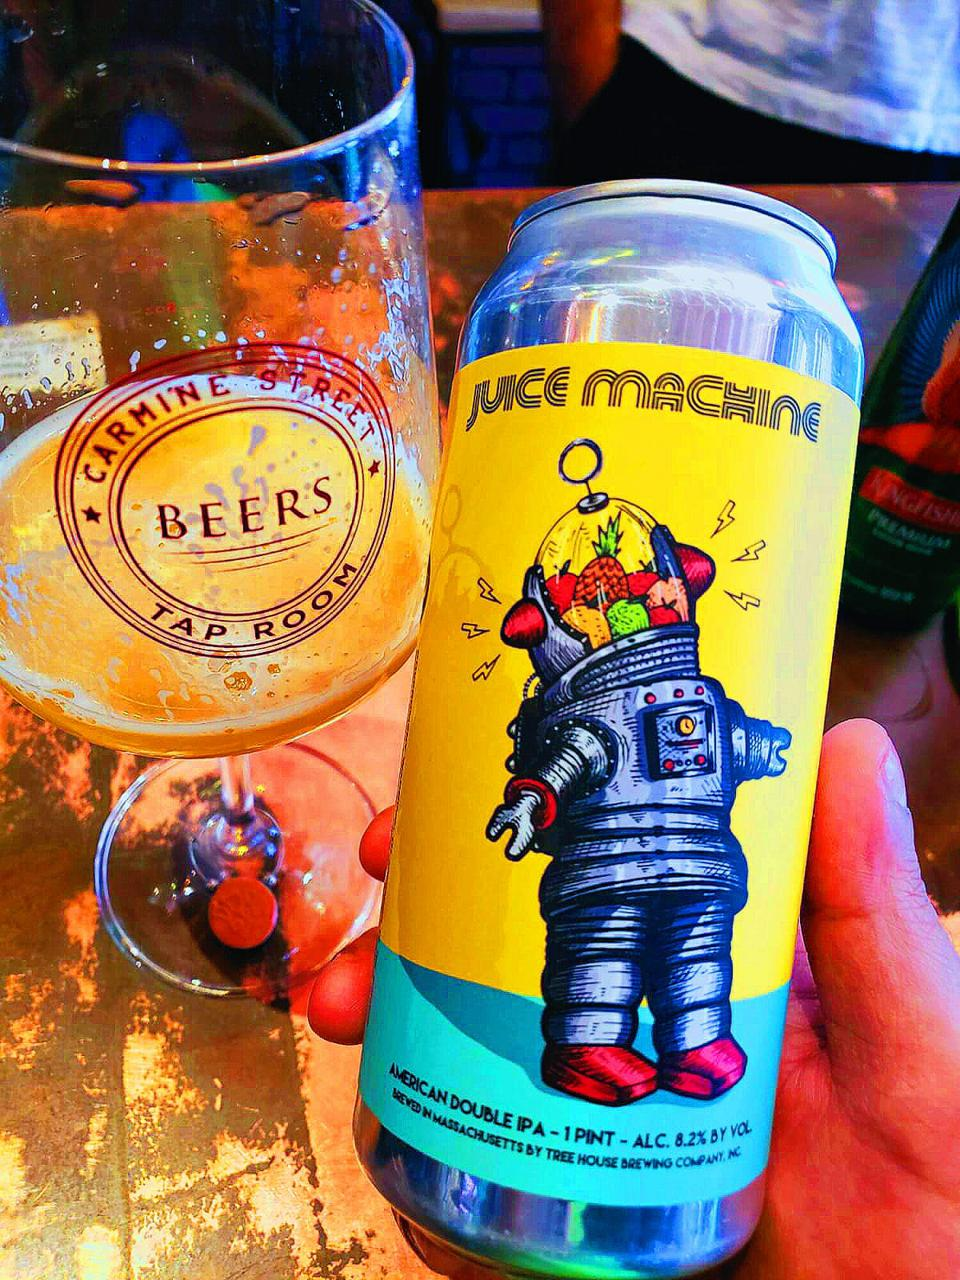 Juice Machine by Tree House Brewing Company.